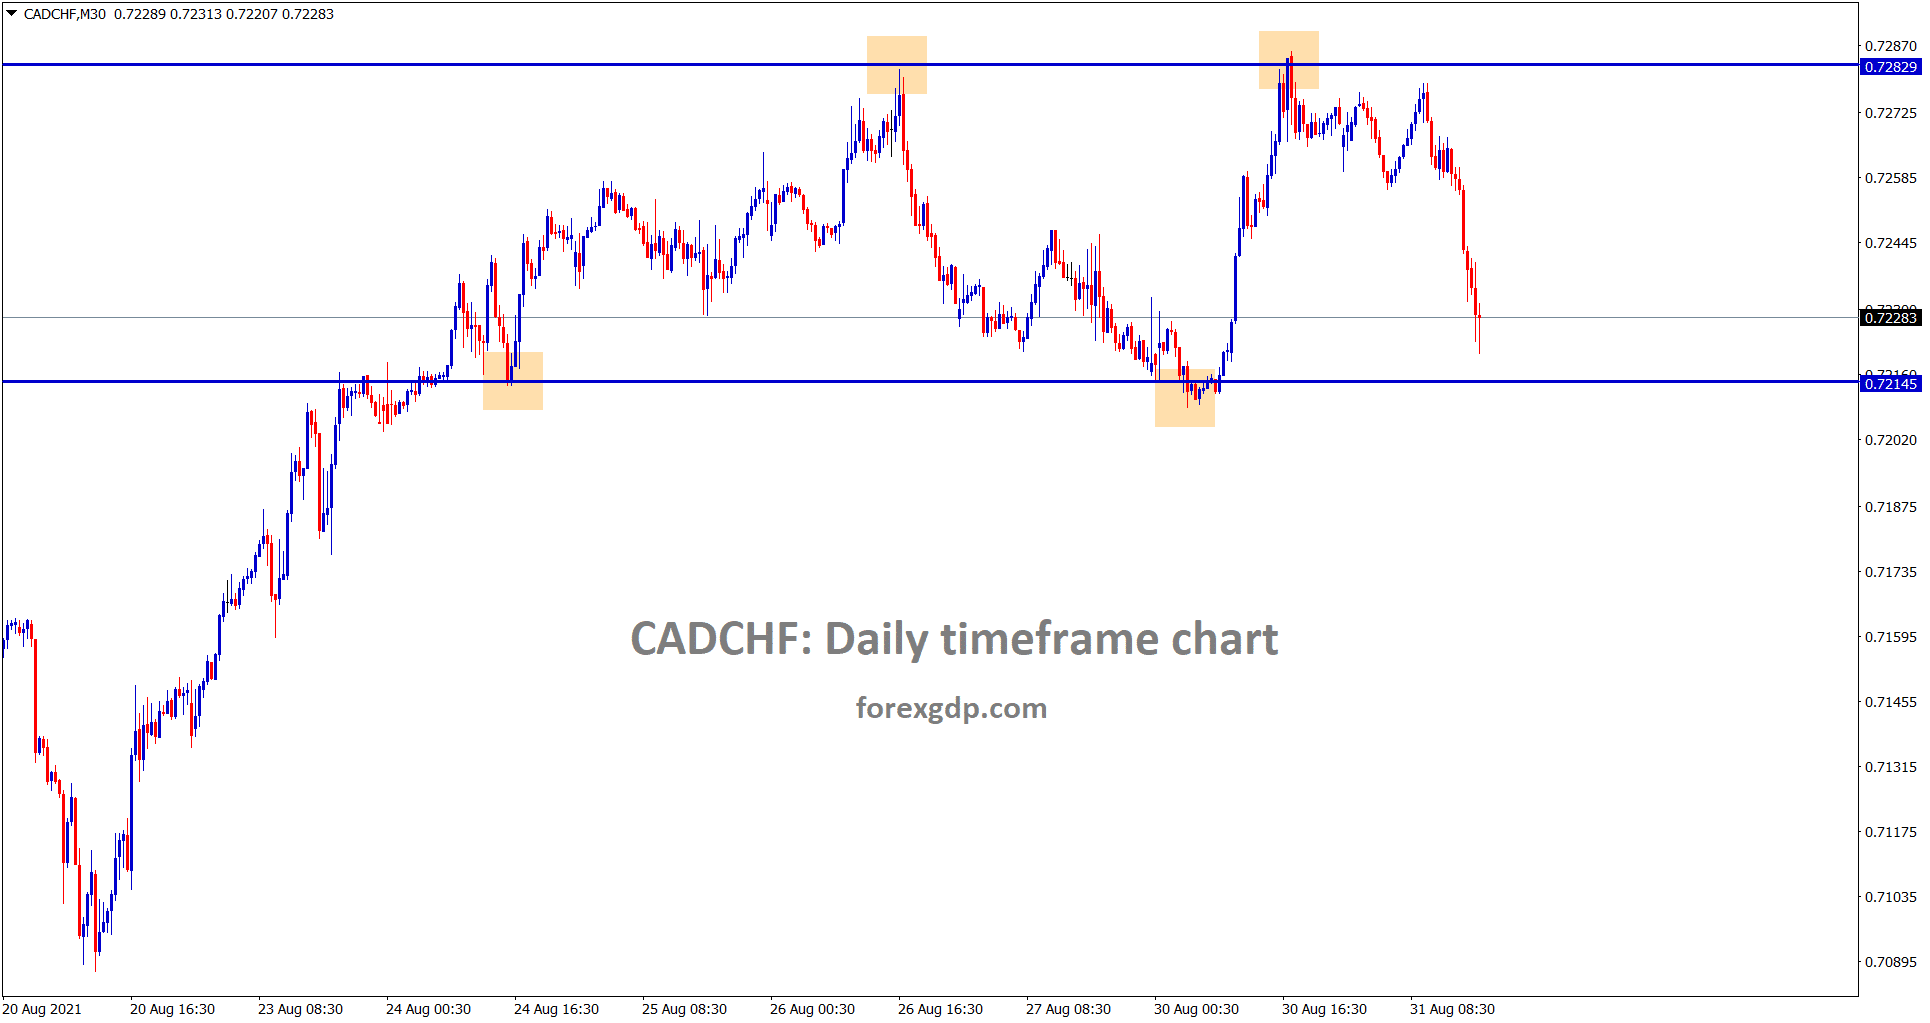 CADCHF is ranging now between the support and resistance areas